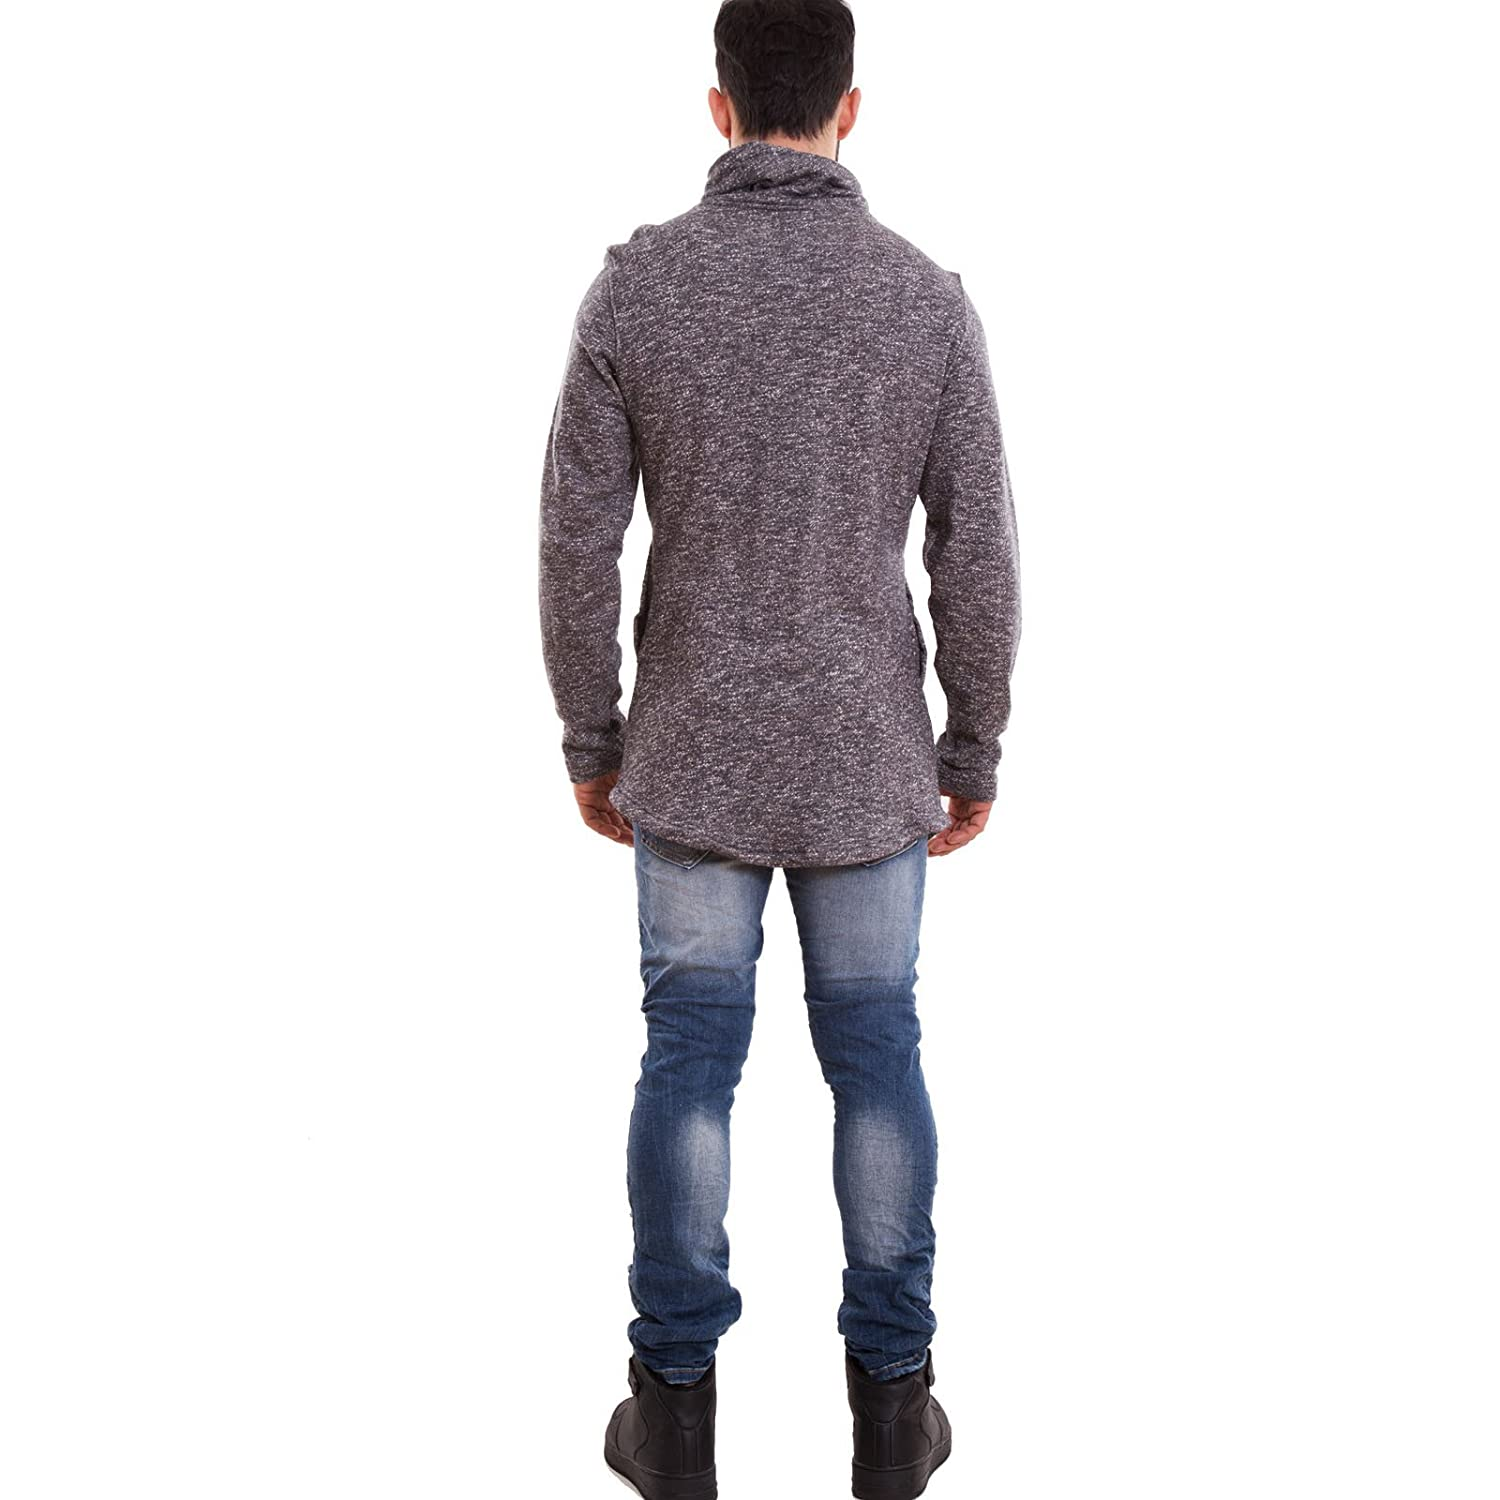 toocool?-?Jacket Long Sleeve Zip Laces Cotton High Collar Men's NEW A-1104